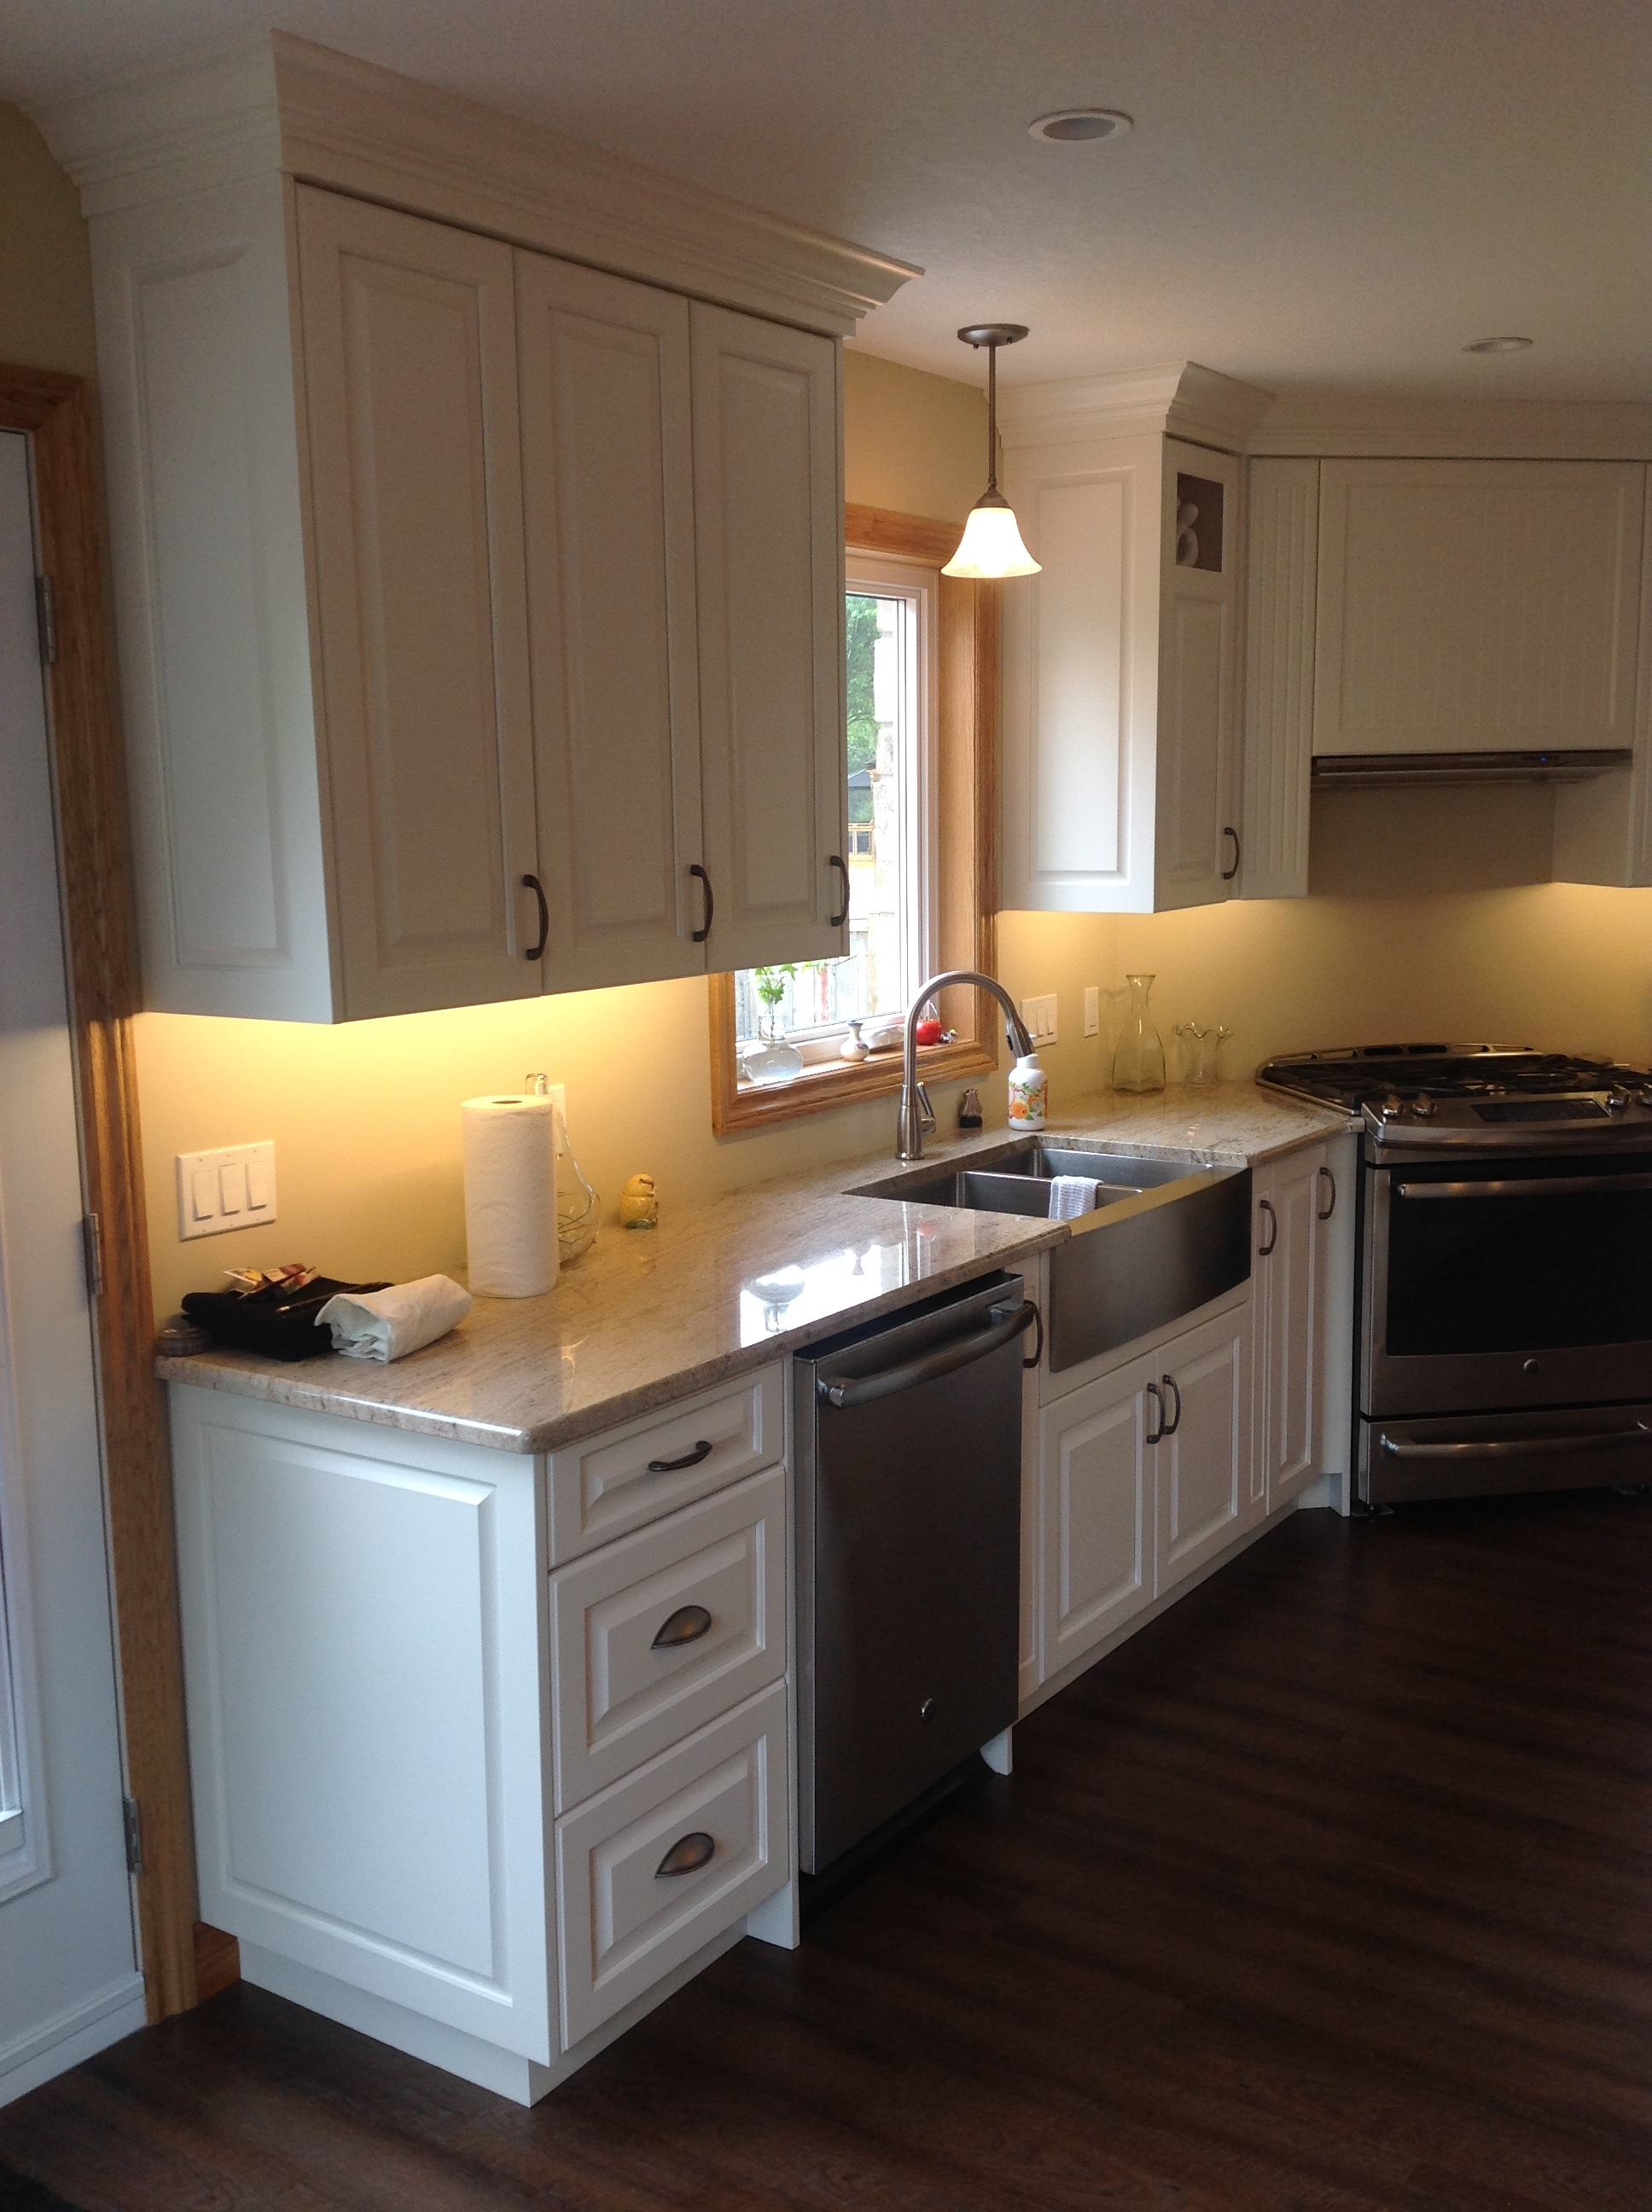 Under cabinet lighting valance   Canadian Woodworking and Home ...